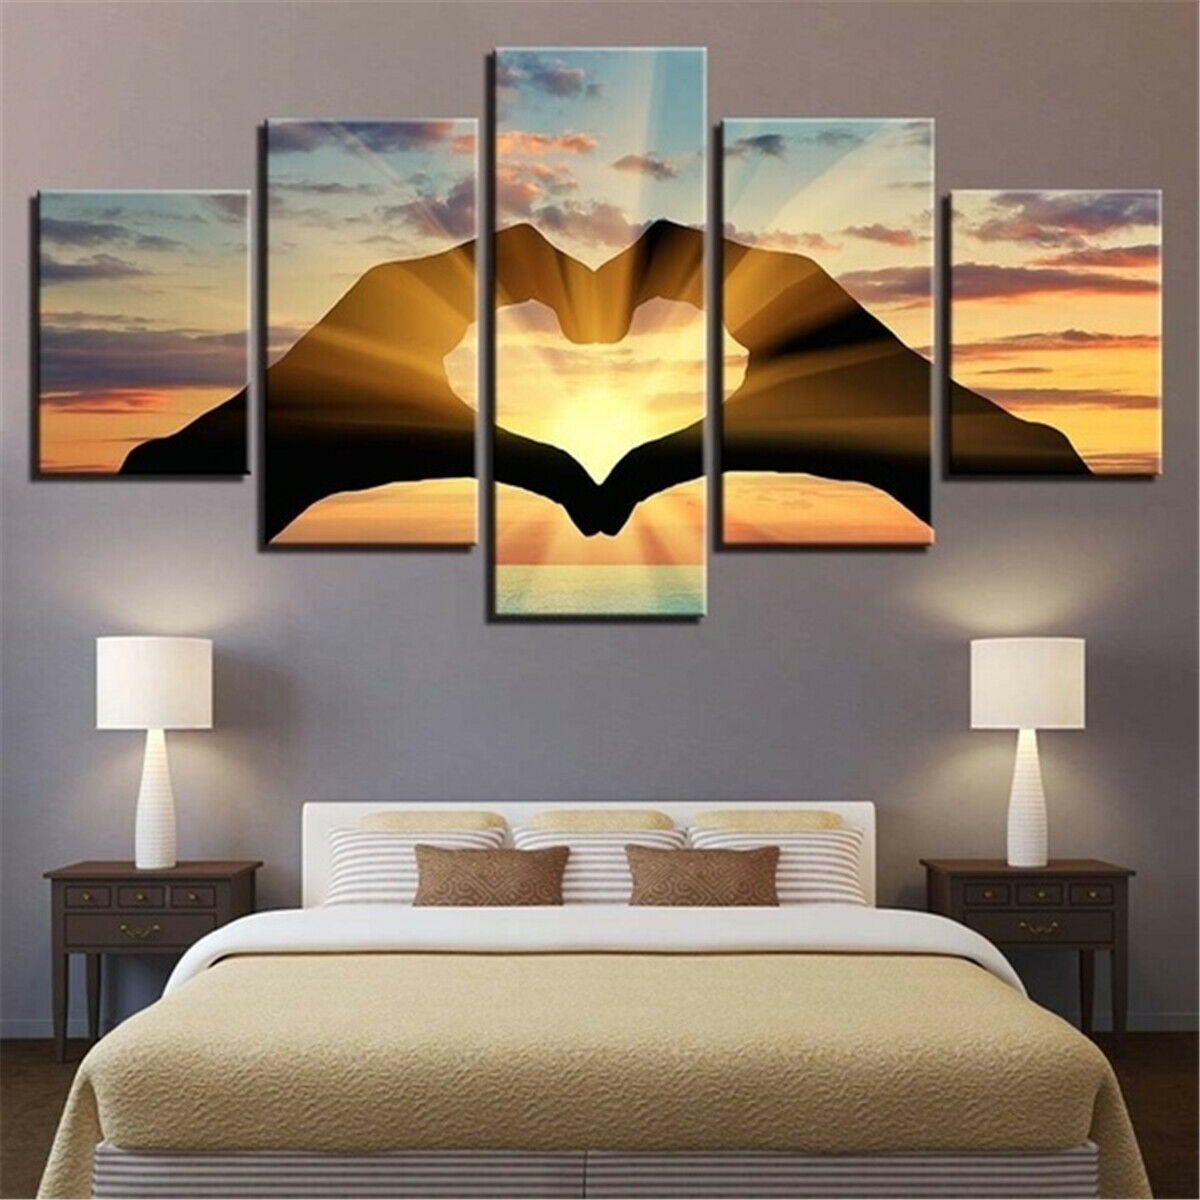 US Home Wall Art Picture Bedroom Decor Couple Love Group Print Painting Canvas 2